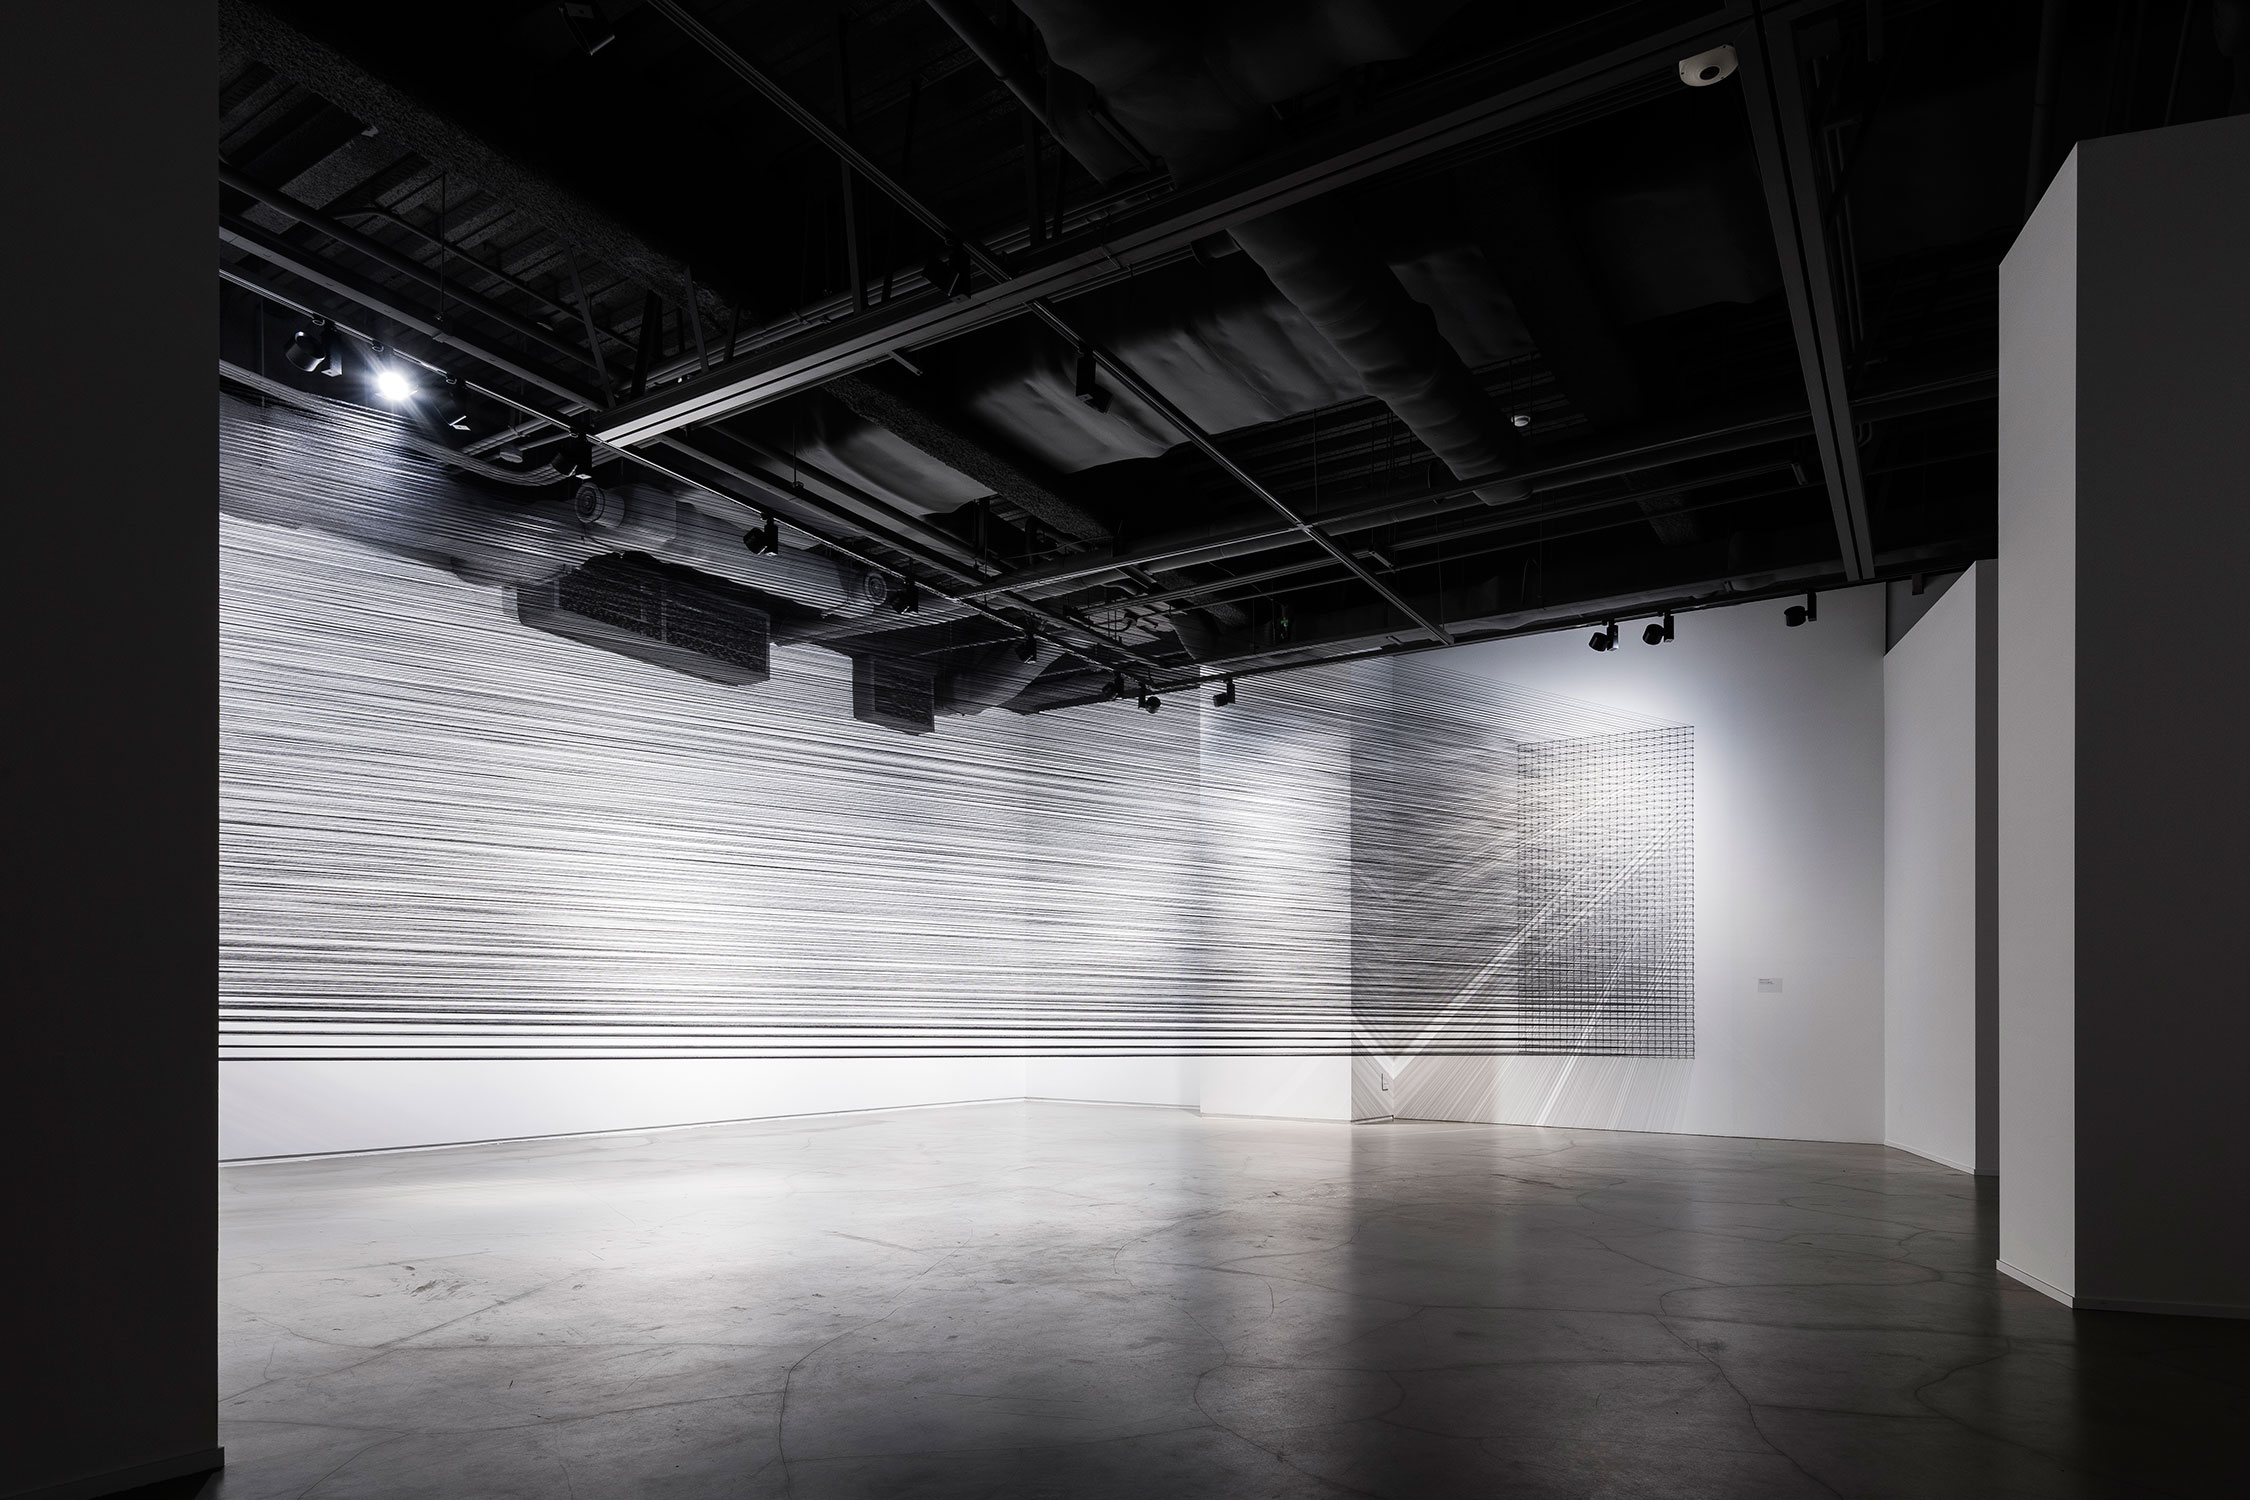 10.EunHyeKang_Flexible Tension_Cotton yarn_Site-specific installation_2018.jpg